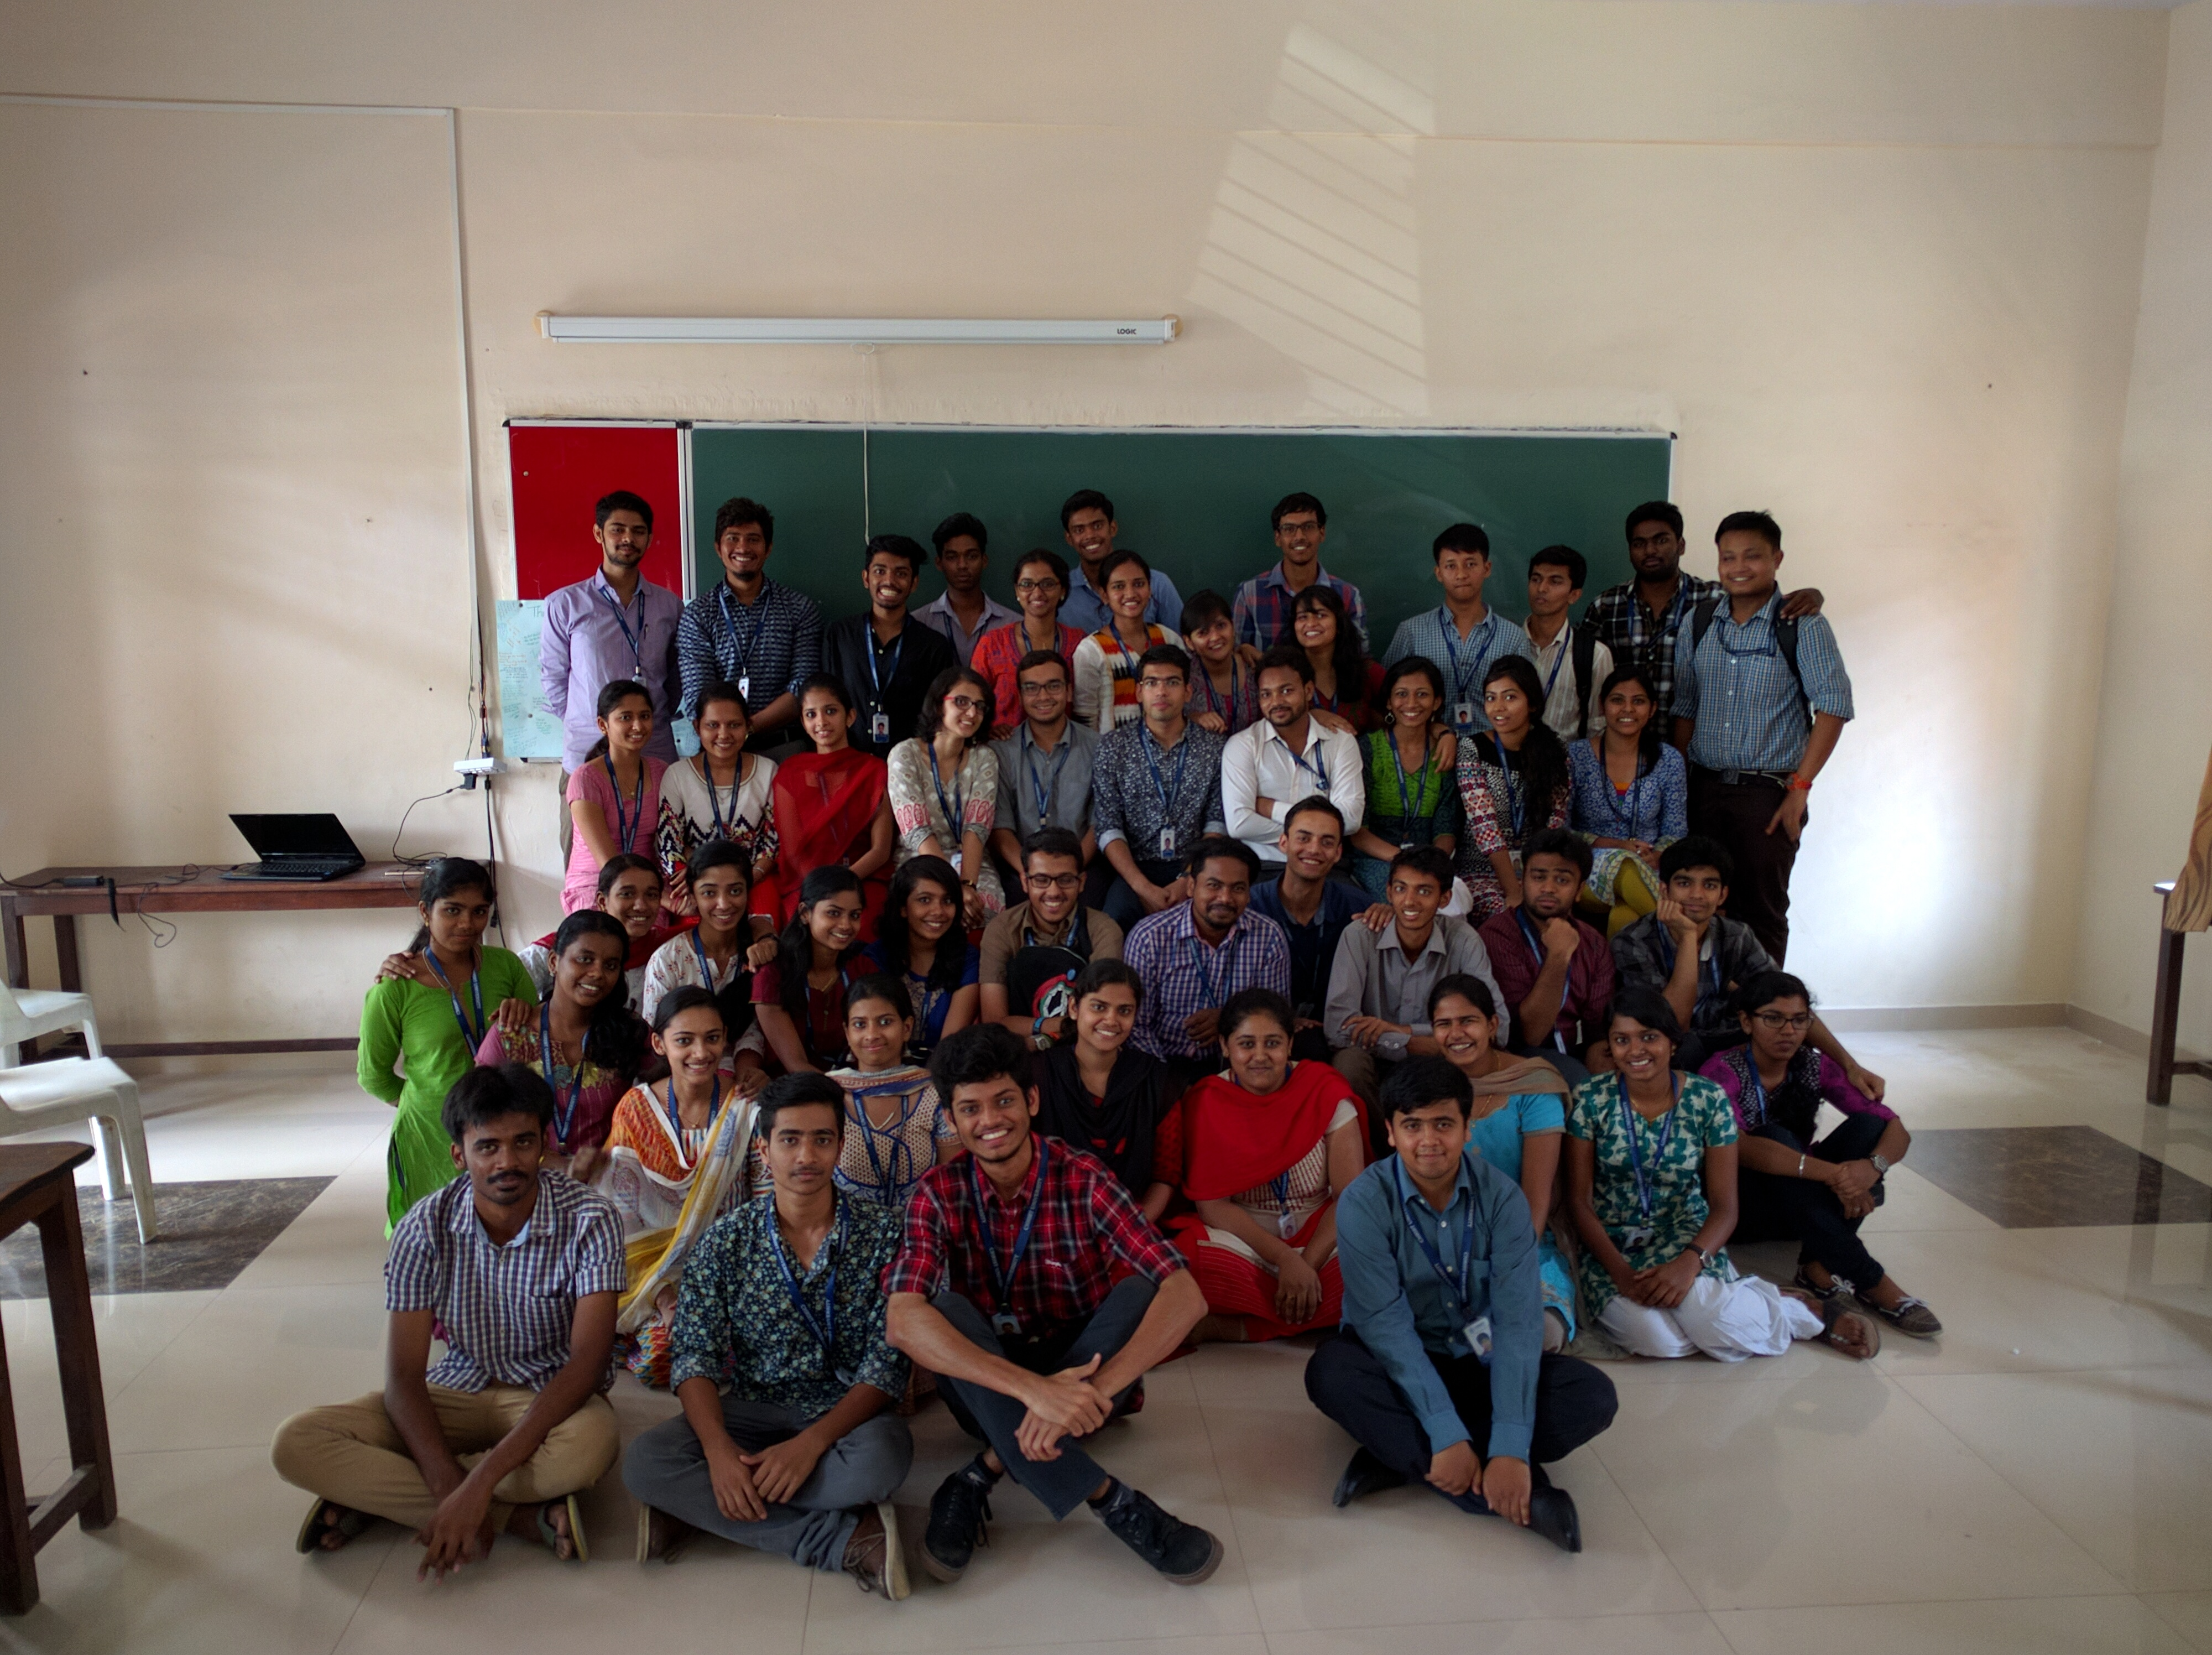 Christ Bsc pcm 2014-17(2).jpg English: Christ university second year students group photo Date 22 March 2016, 12:31:34 Source Own work Author